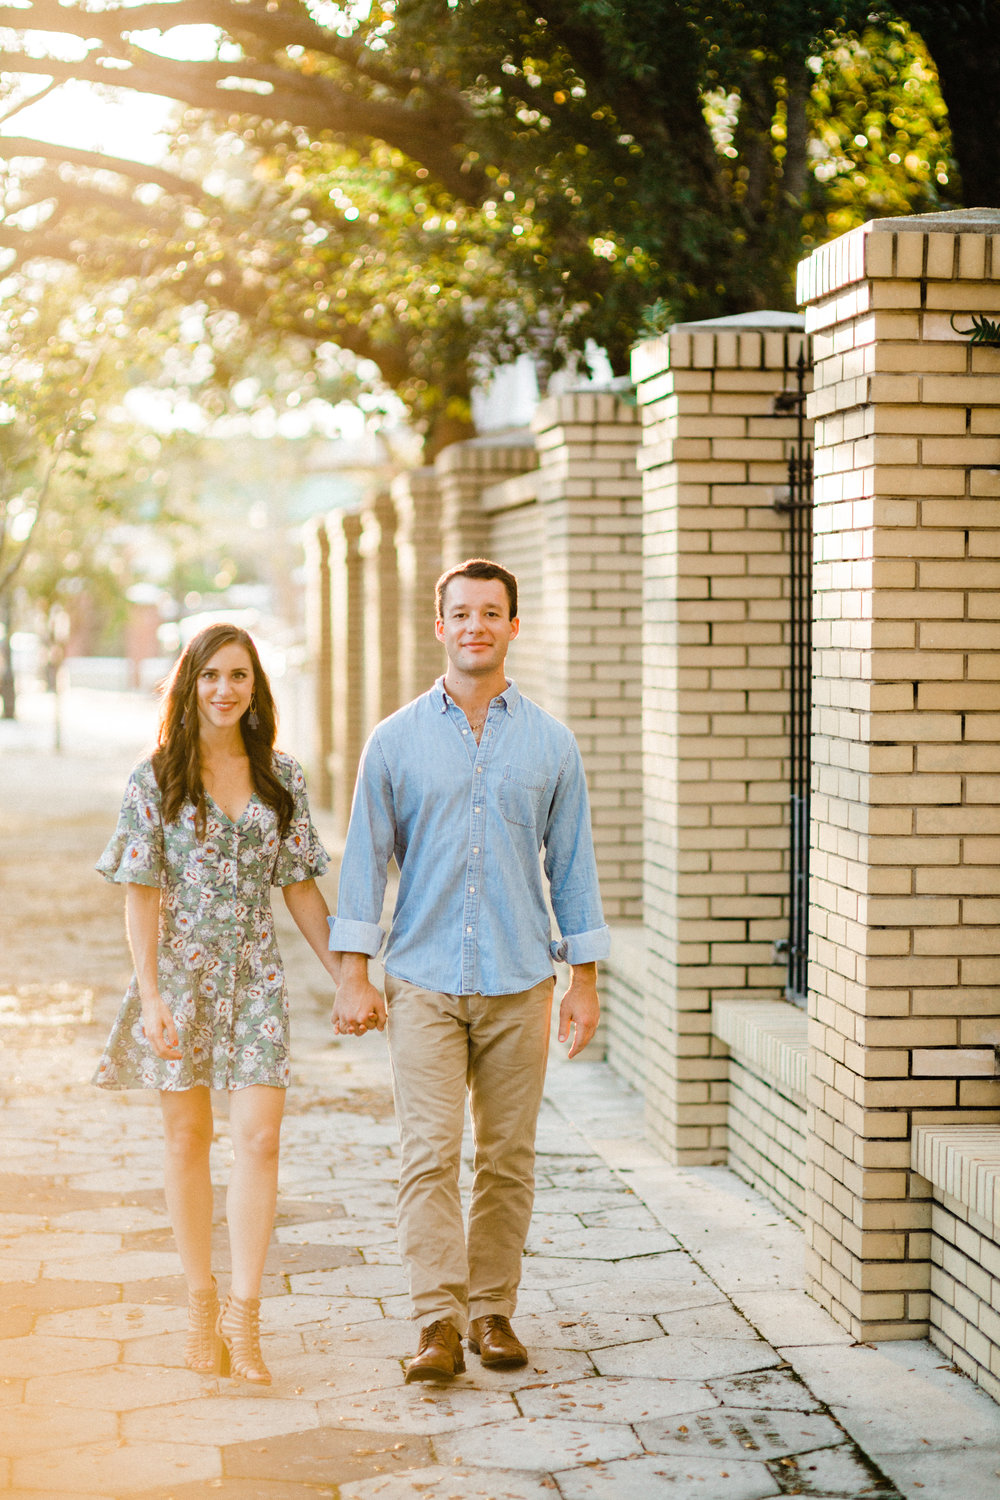 Travis & Christina - Engagement - Jake & Katie Photography_036.jpg